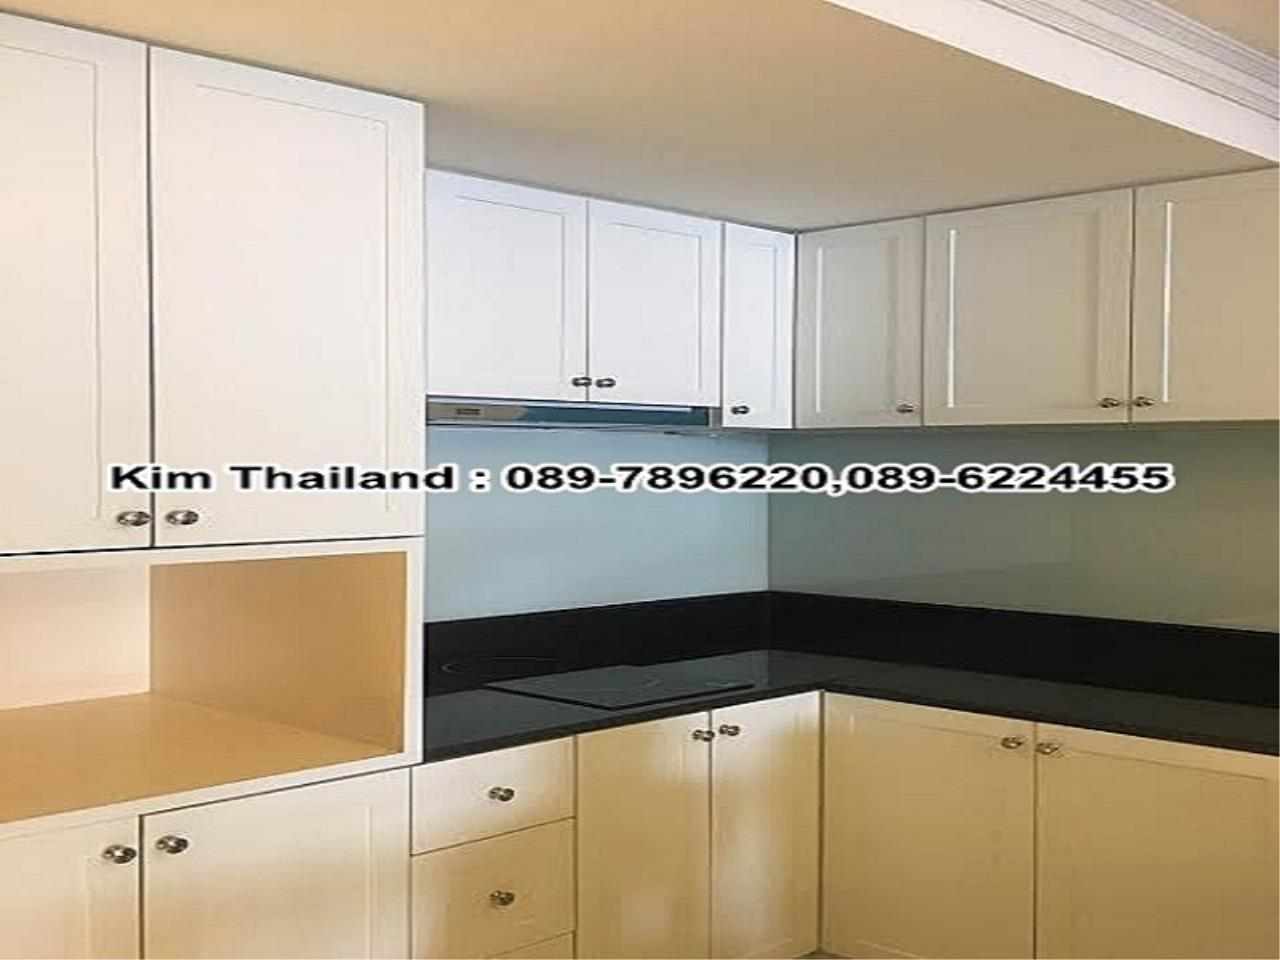 BKKcondorental Agency's For sale,State Tower Condominium., 73 sqm., 1 bedroom. Price 6 million baht. 8